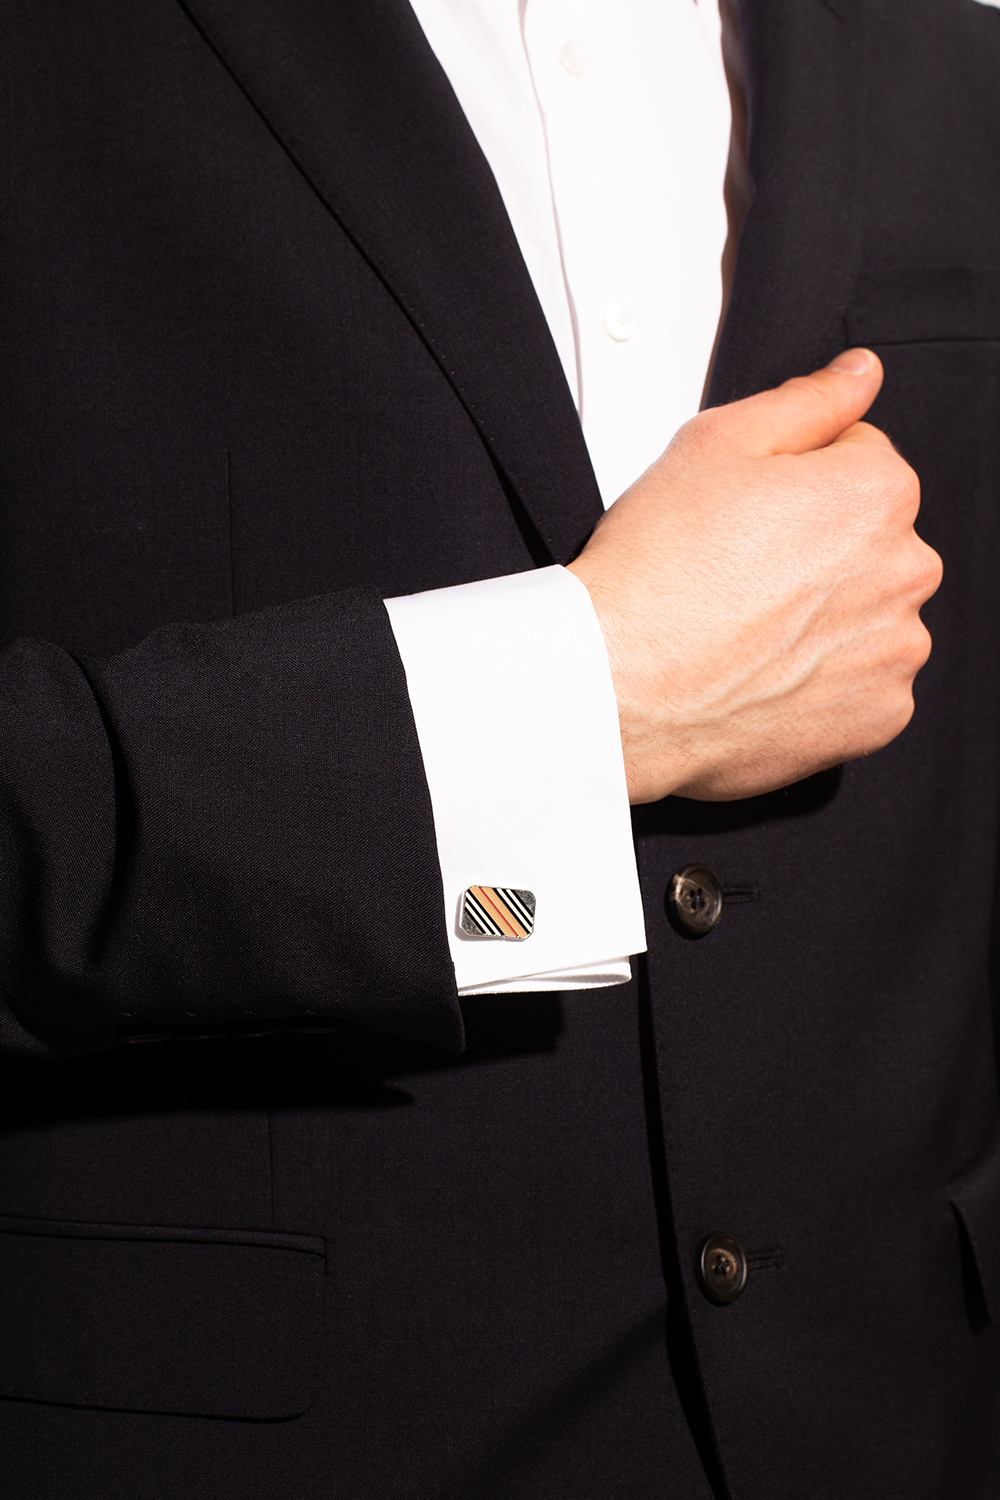 Burberry Cuff links with logo